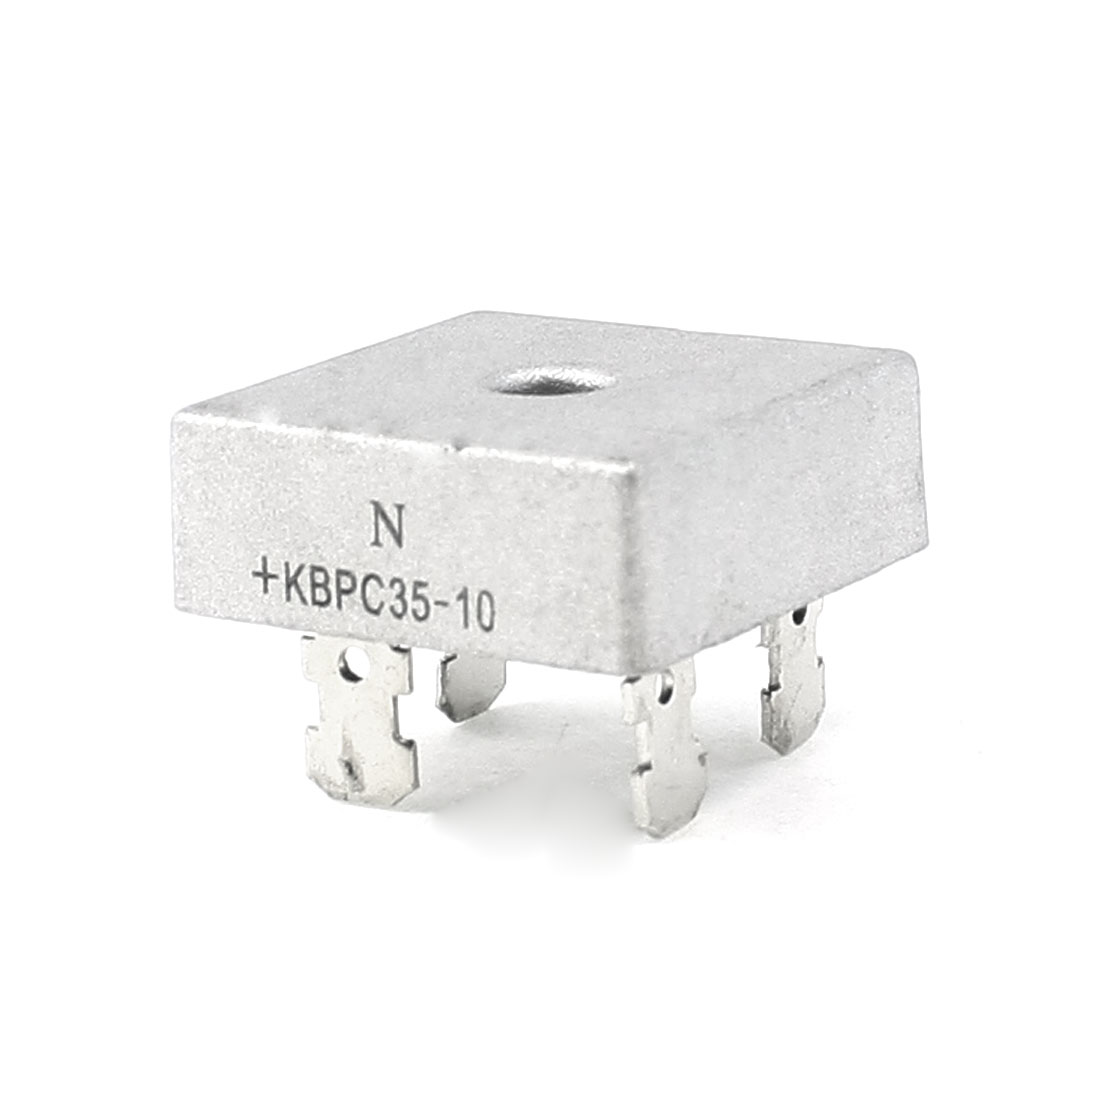 KBPC35-10 1KV 35A Single Phase Bridge Rectifier Half-Wave Silver Tone